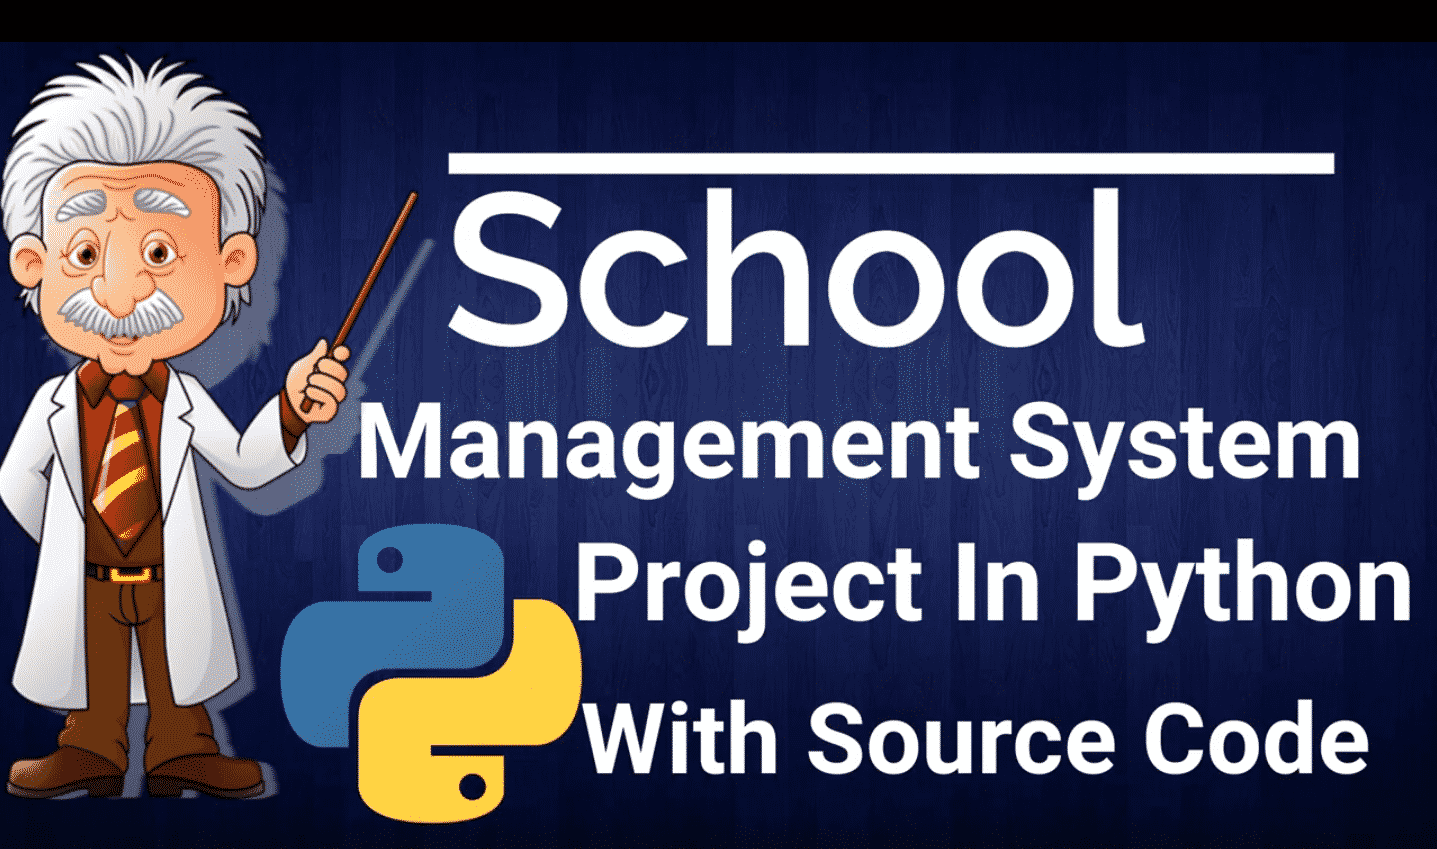 School Management System Project In Python With Source Code 2020